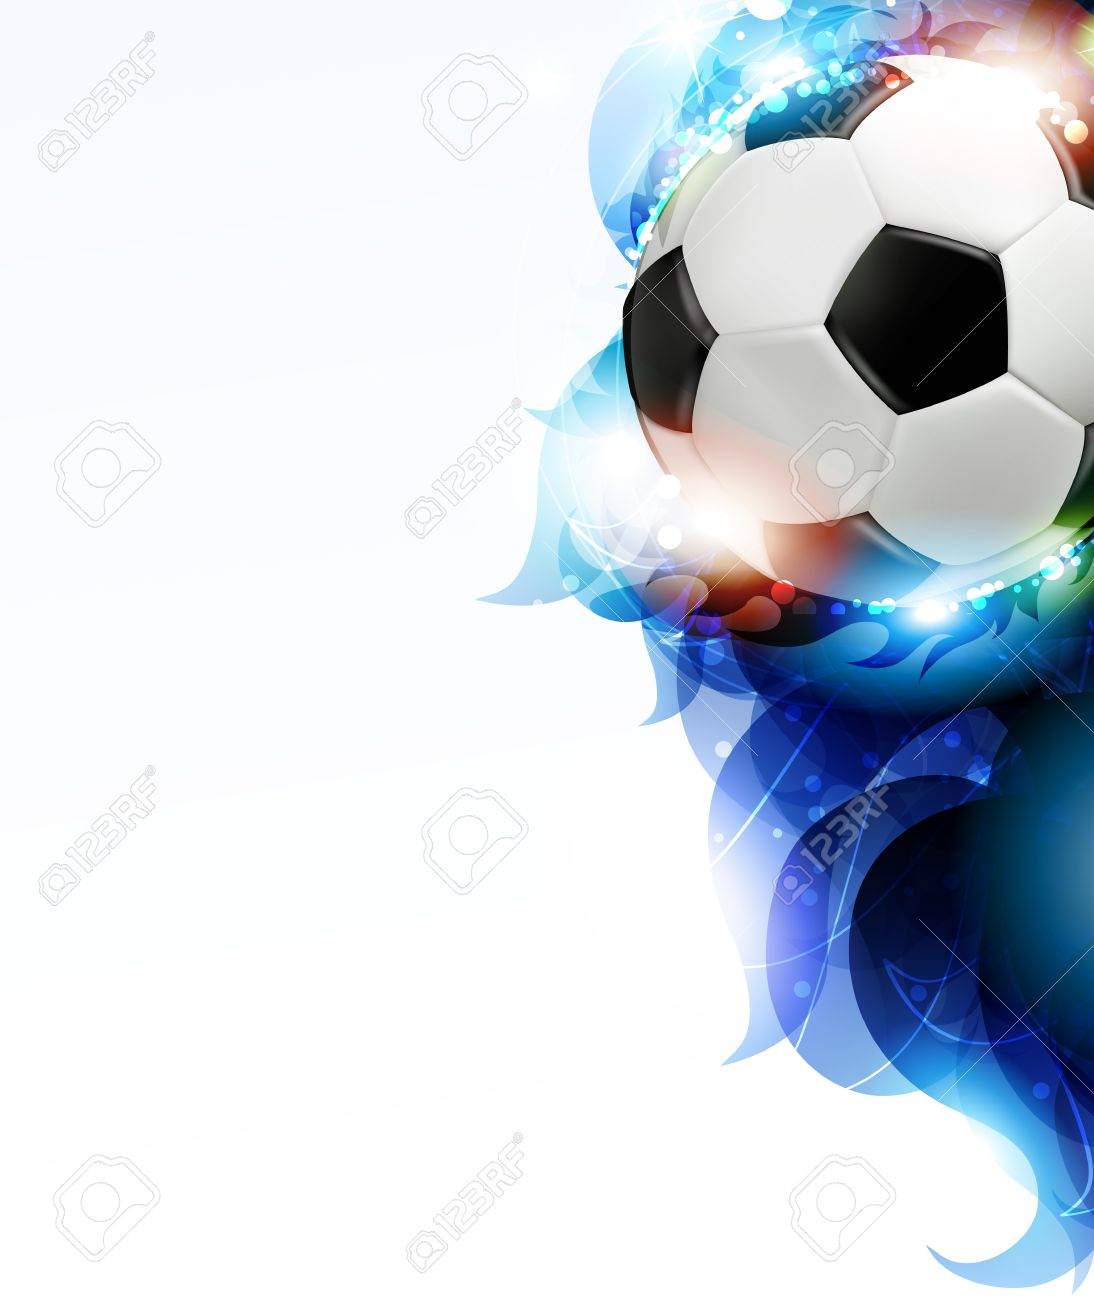 Soccer ball with transparent blue petals on a white background. Abstract soccer background. - 29236035